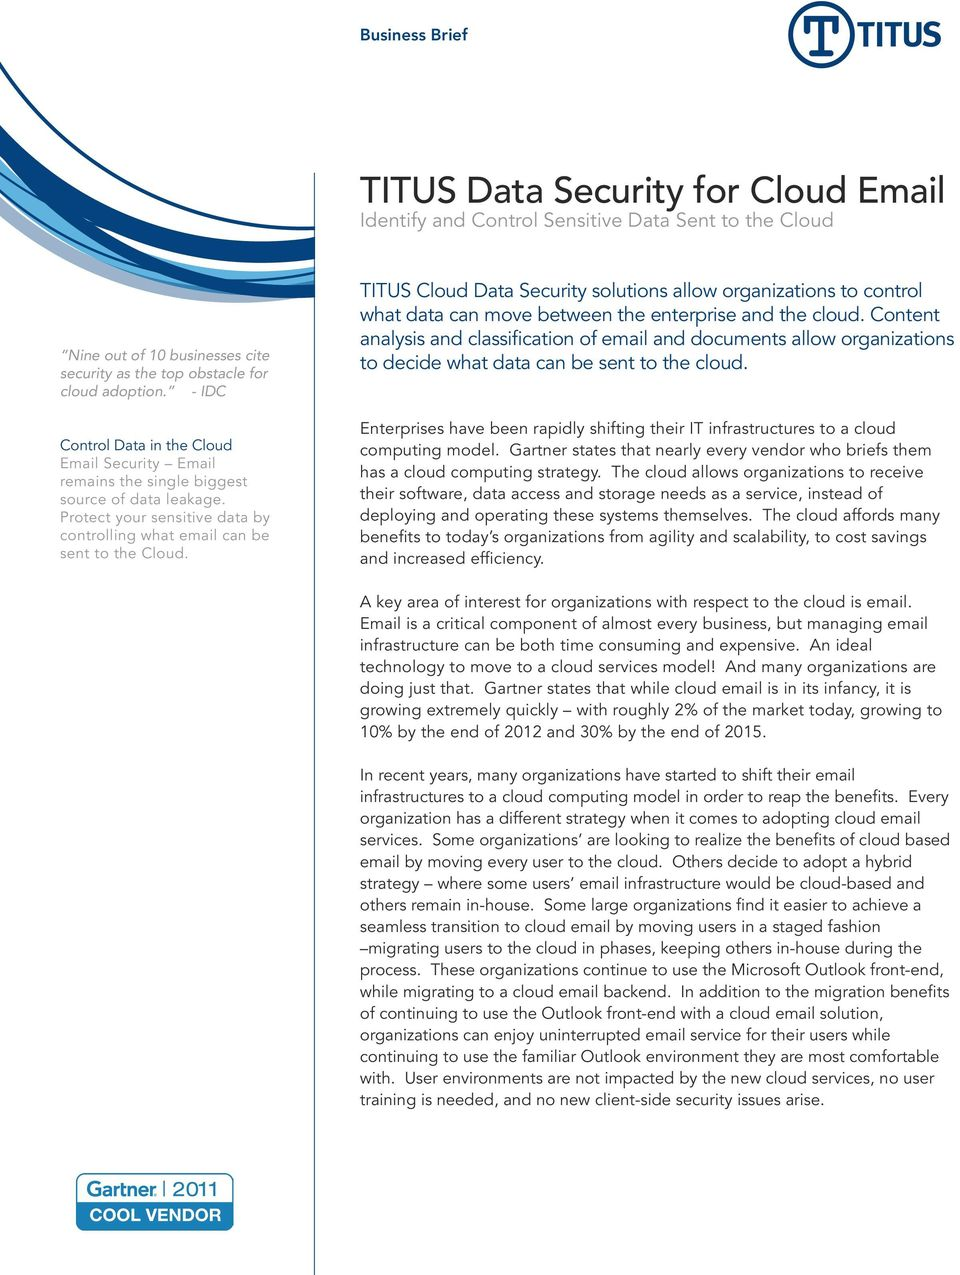 TITUS Cloud Data Security solutions allow organizations to control what data can move between the enterprise and the cloud.